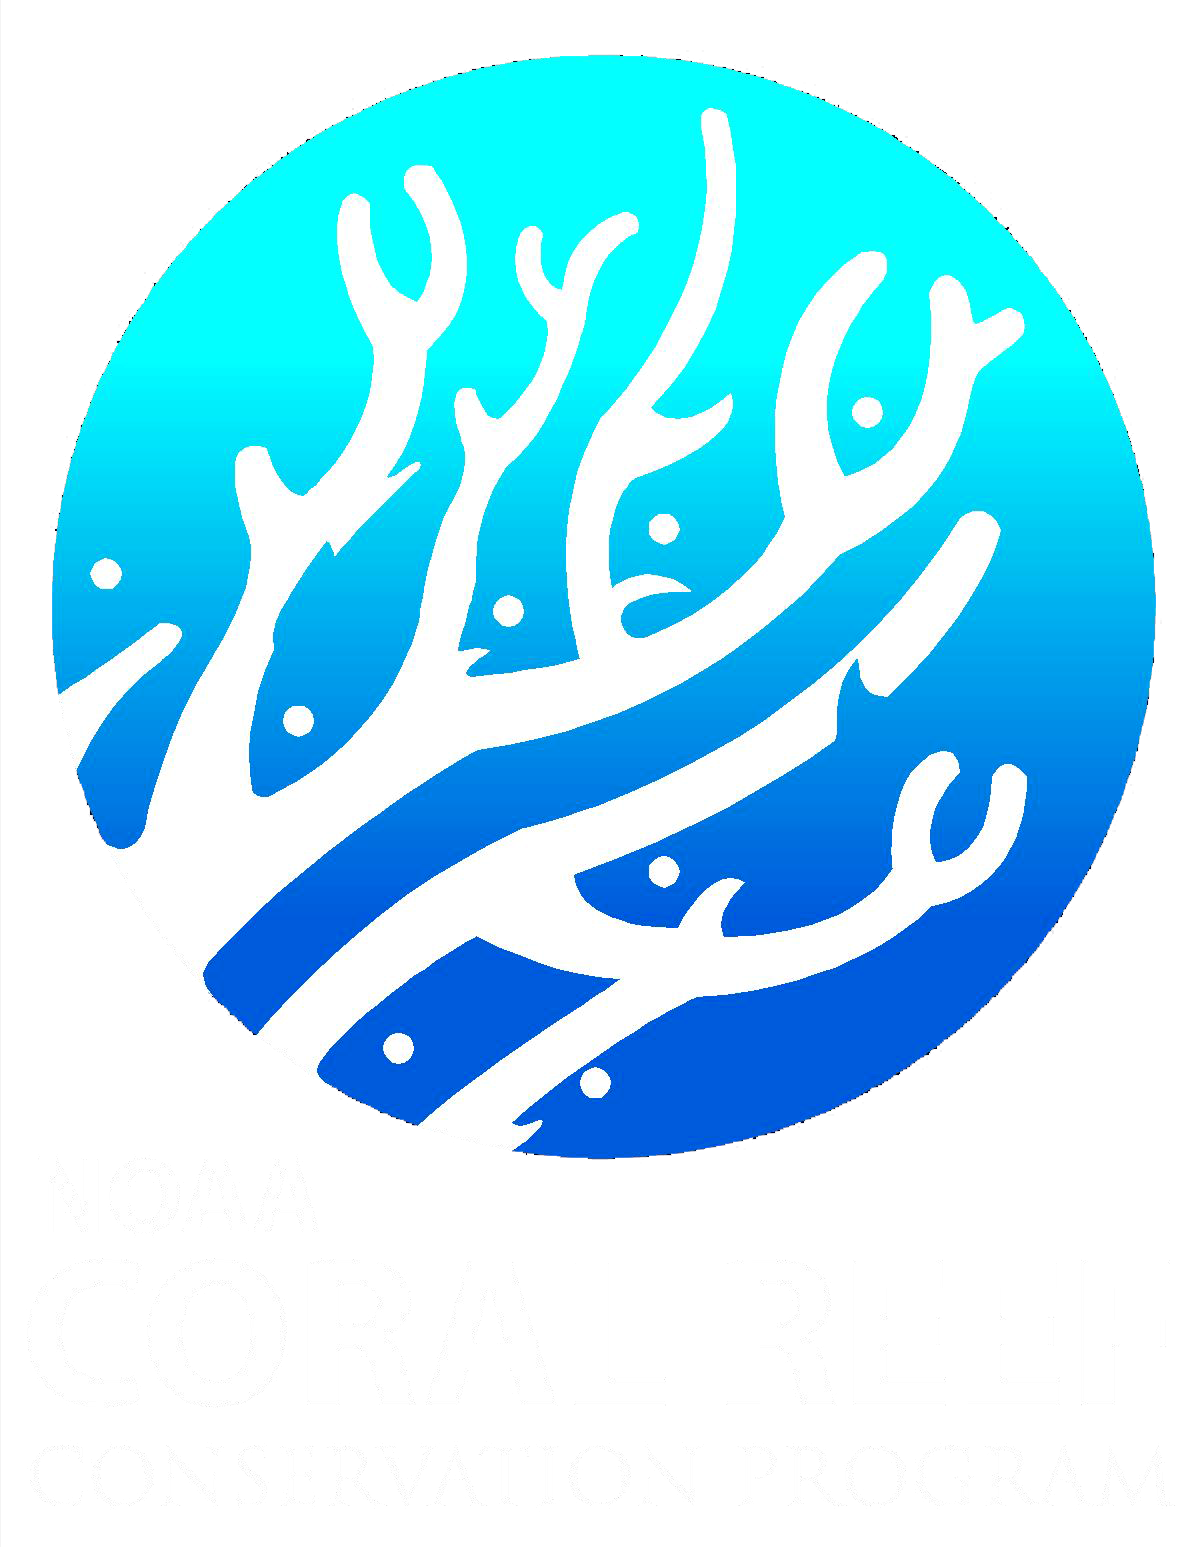 NOAA CoRIS - What are Coral Reefs